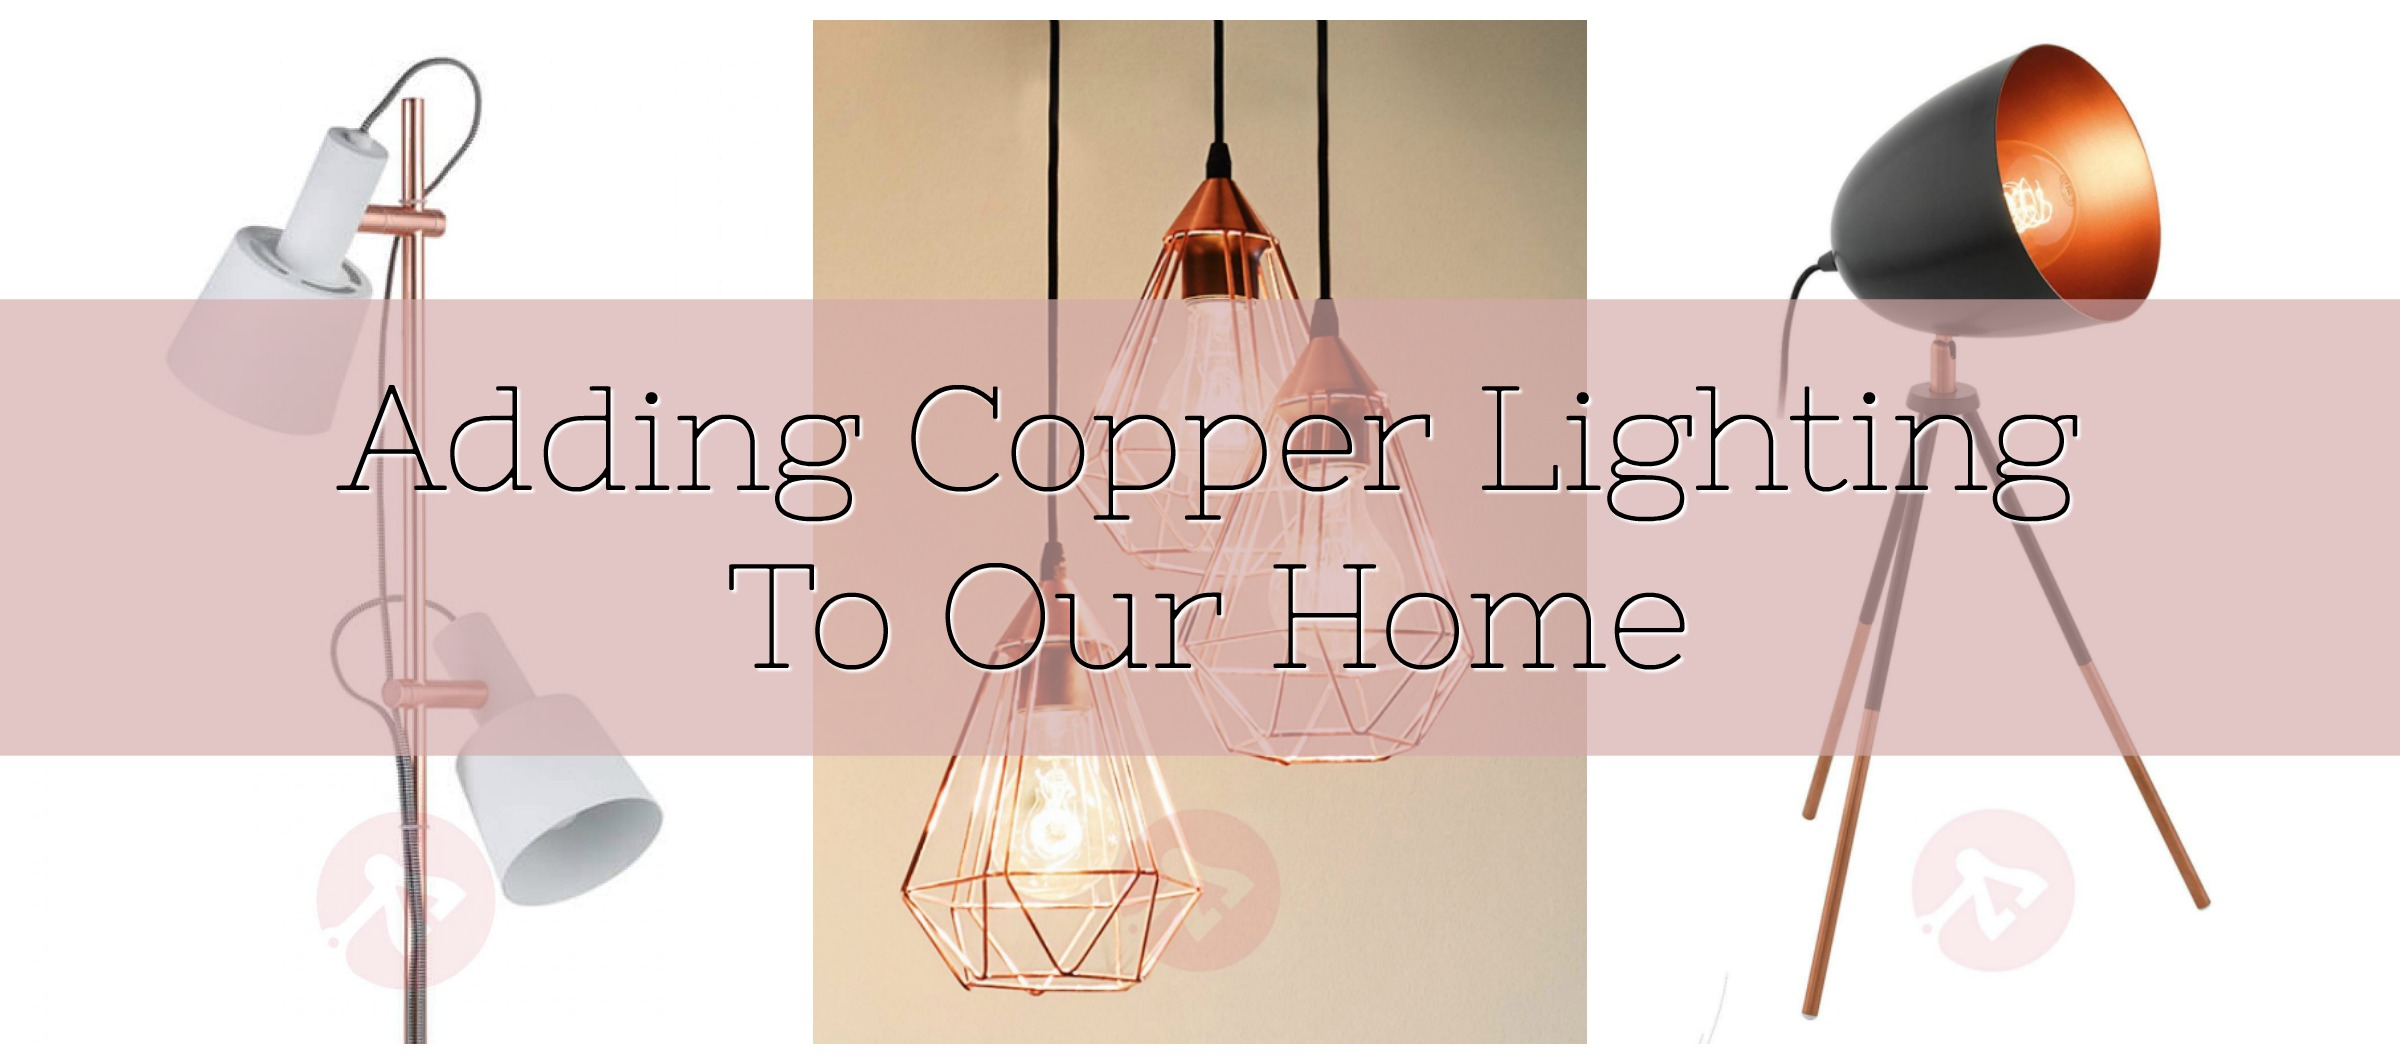 Introducing Copper Lighting To Our Home